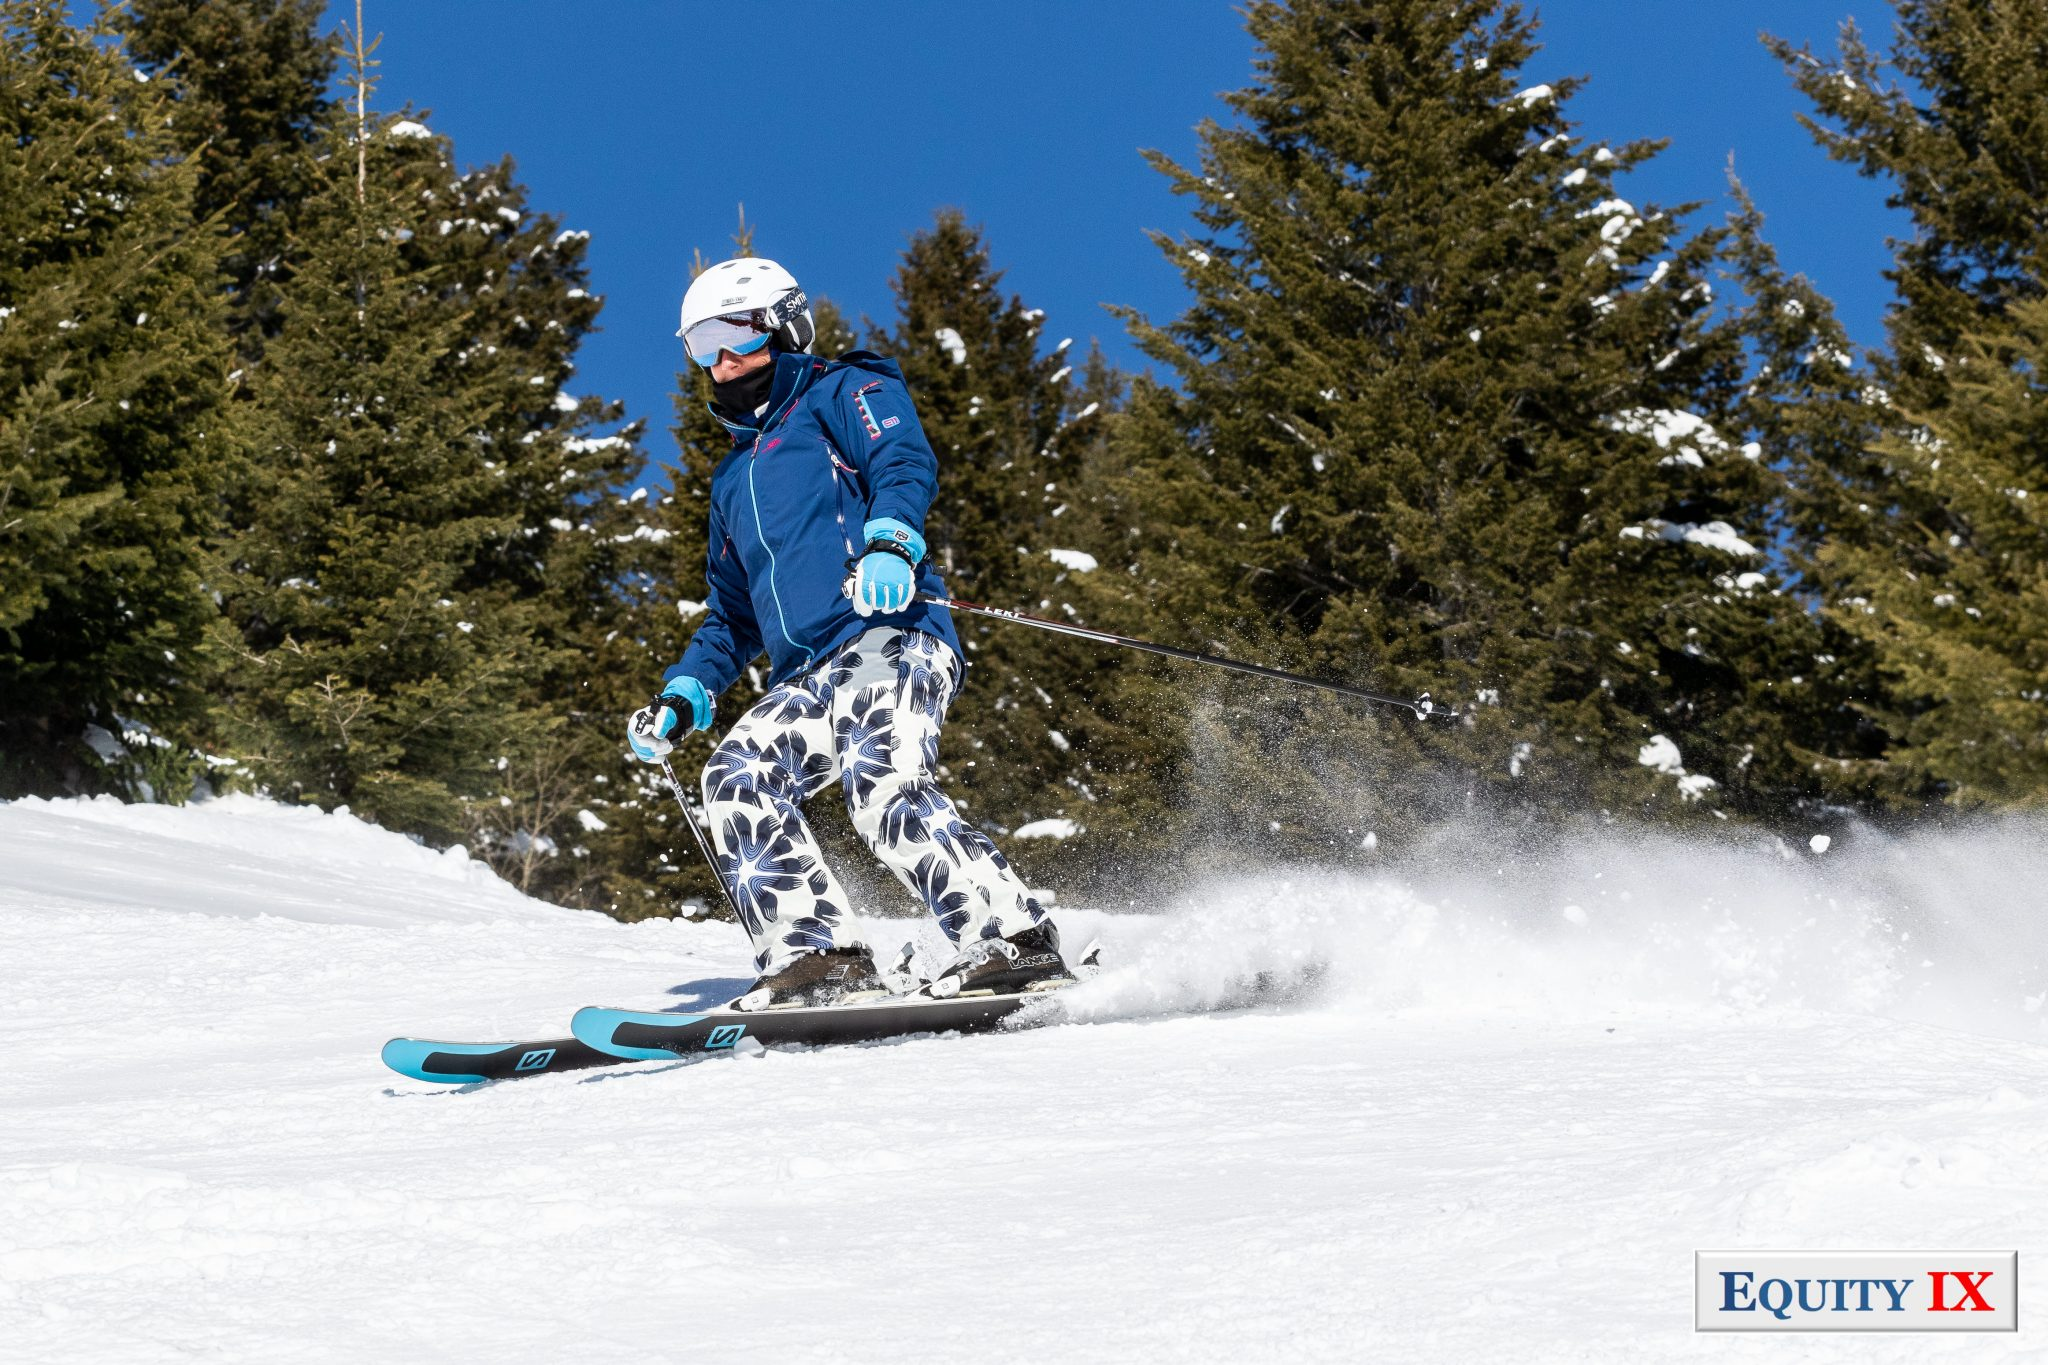 Leigh Ernst Friestedt skiing at Jackson Hole, WY 2018 in blue outfit with white helmet © Equity IX - SportsOgram